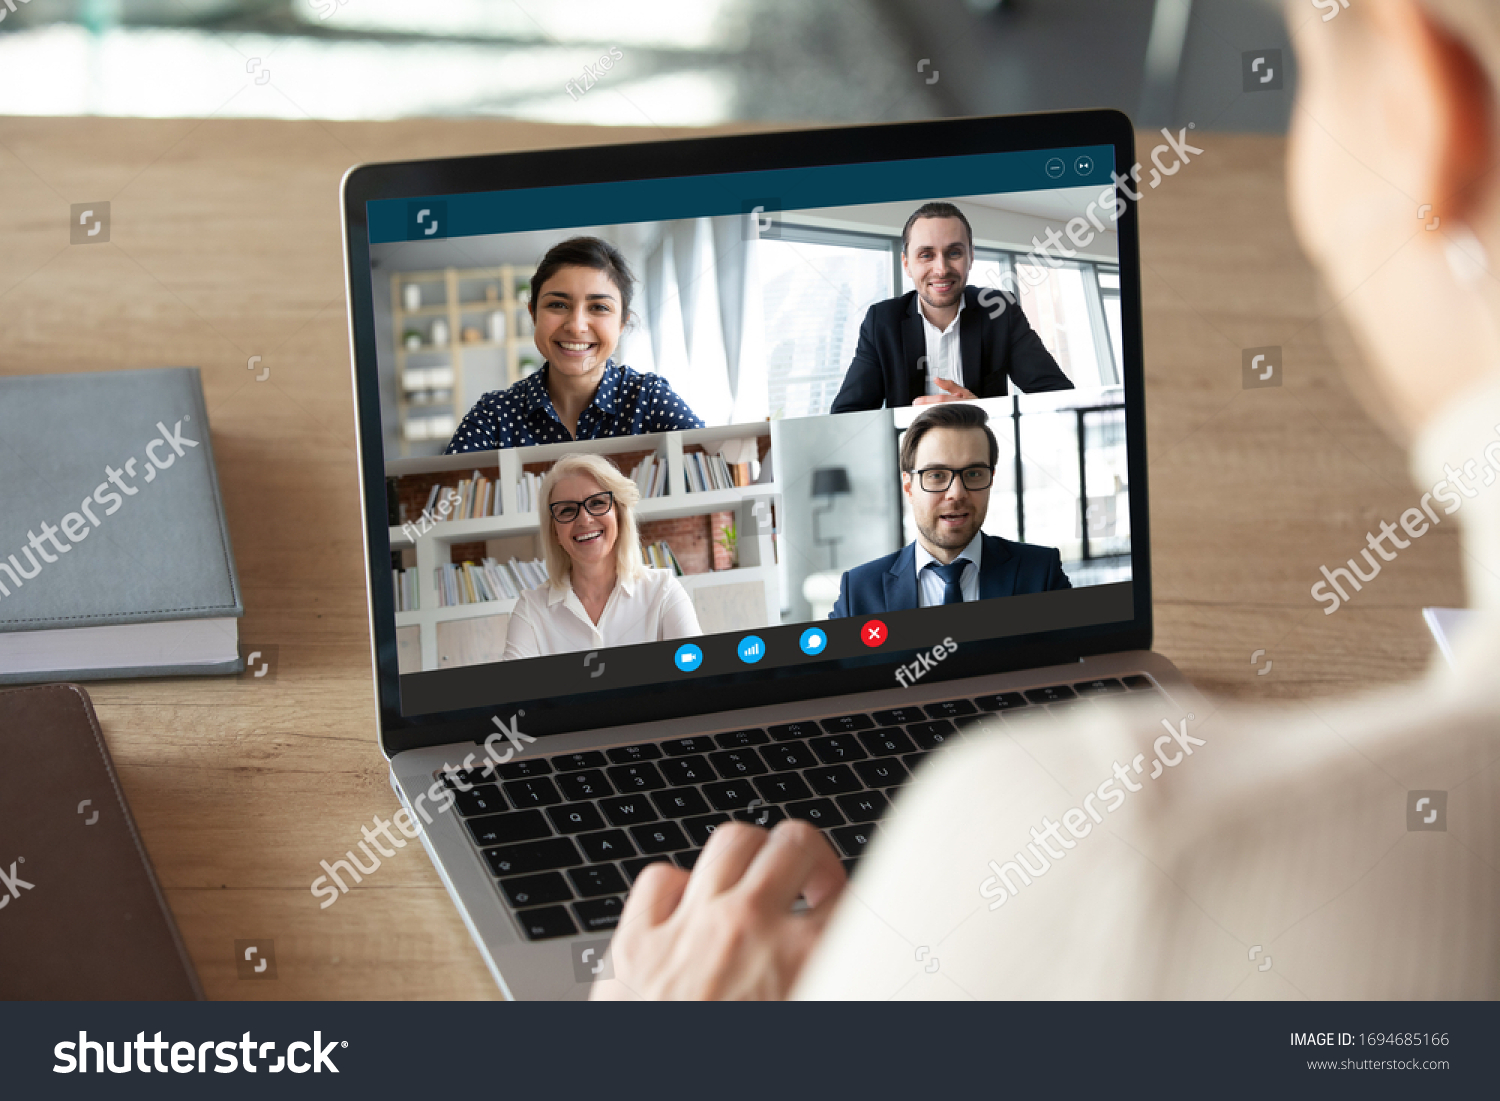 View over female shoulder at computer webcam screen view of four different age and ethnicity business people negotiating distantly using video conference app, video call virtual communication concept #1694685166